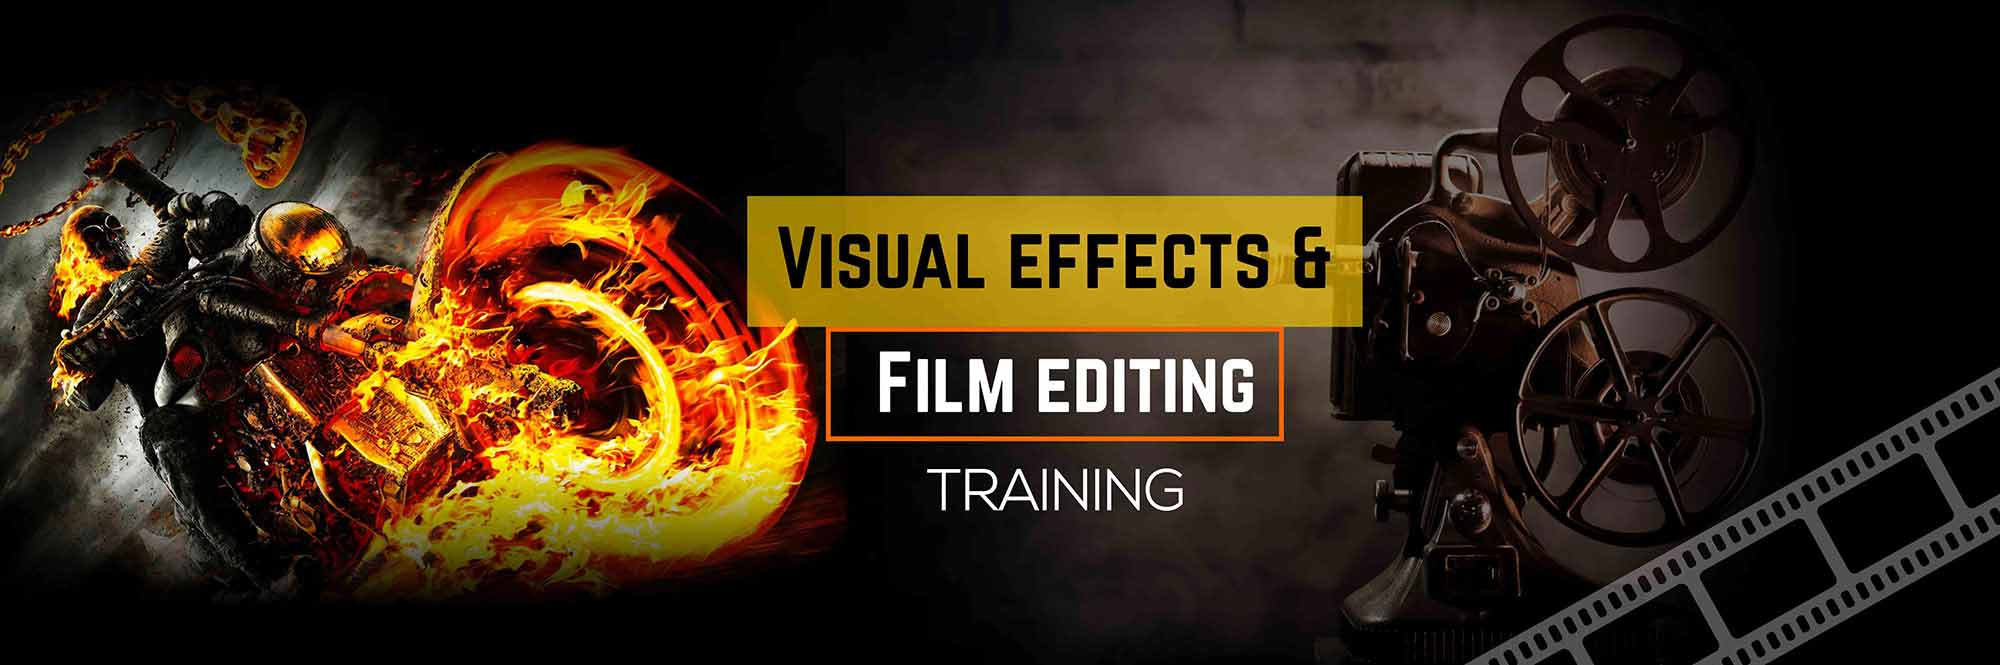 visual effects training in hyderabad, film editing courses in hyderabad